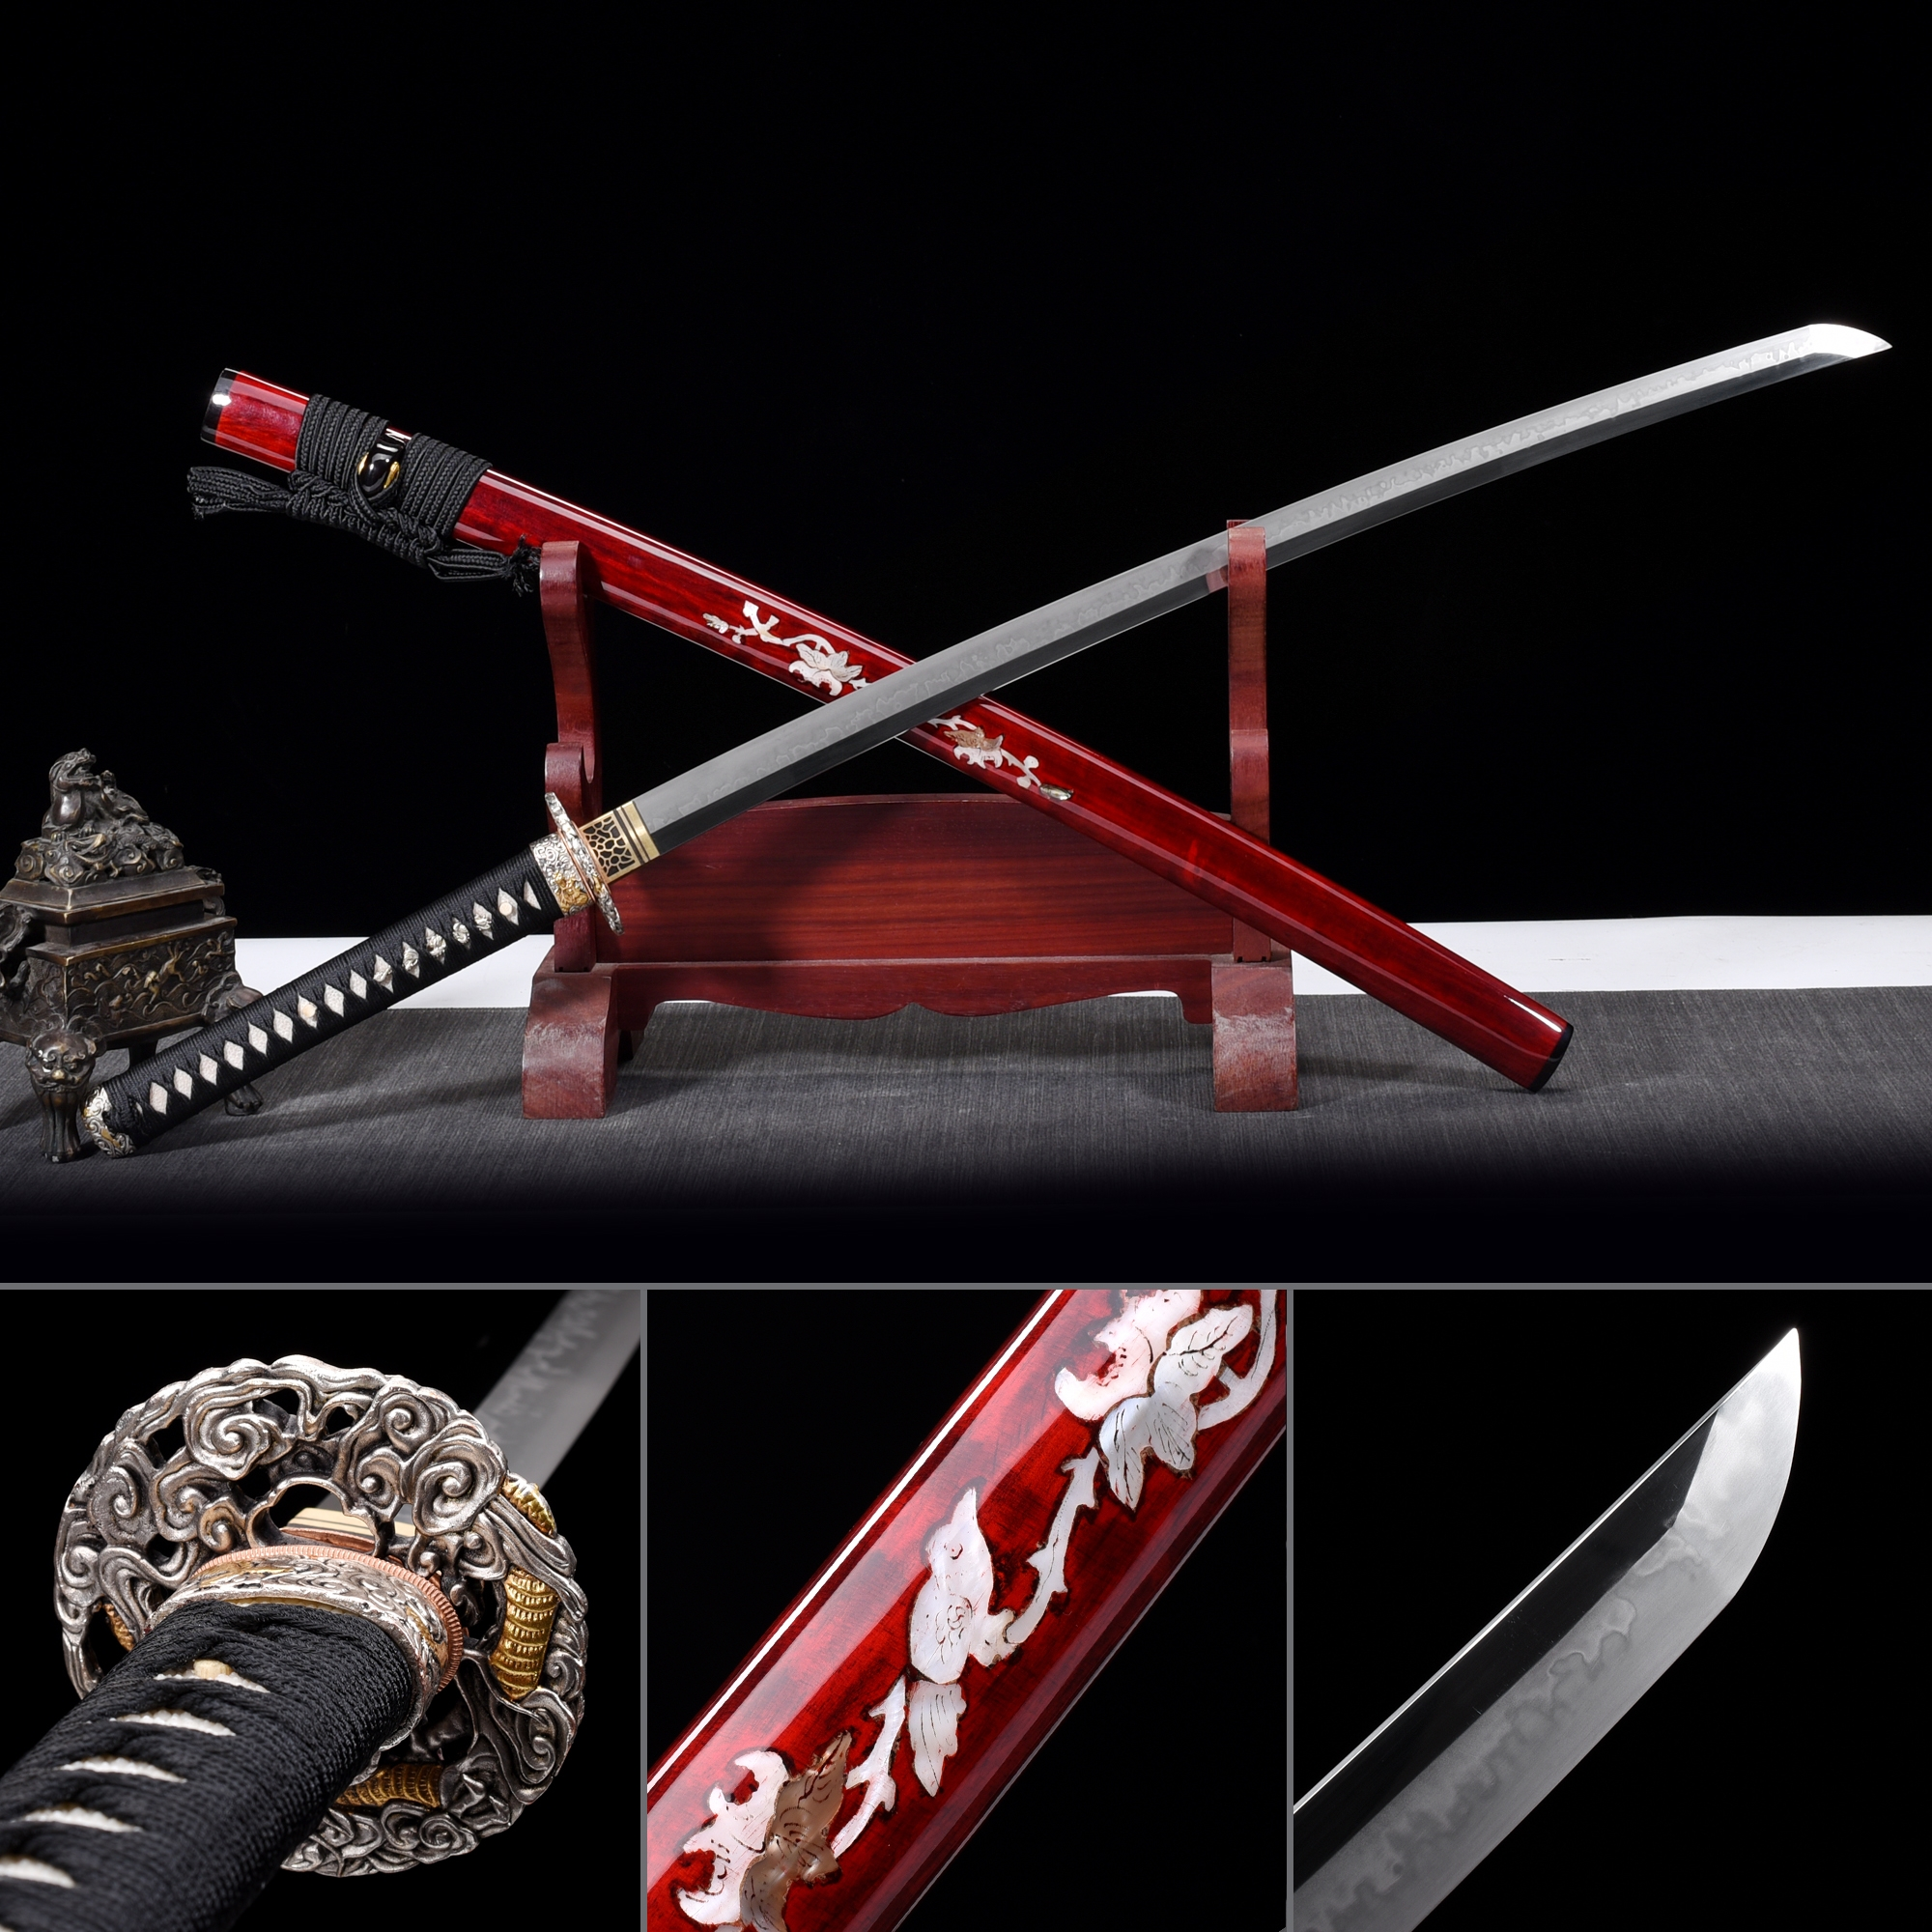 Battle Ready Sword, Authentic Japanese Katana T10 Folded Clay Tempered Steel Sturdy Tactical Swords